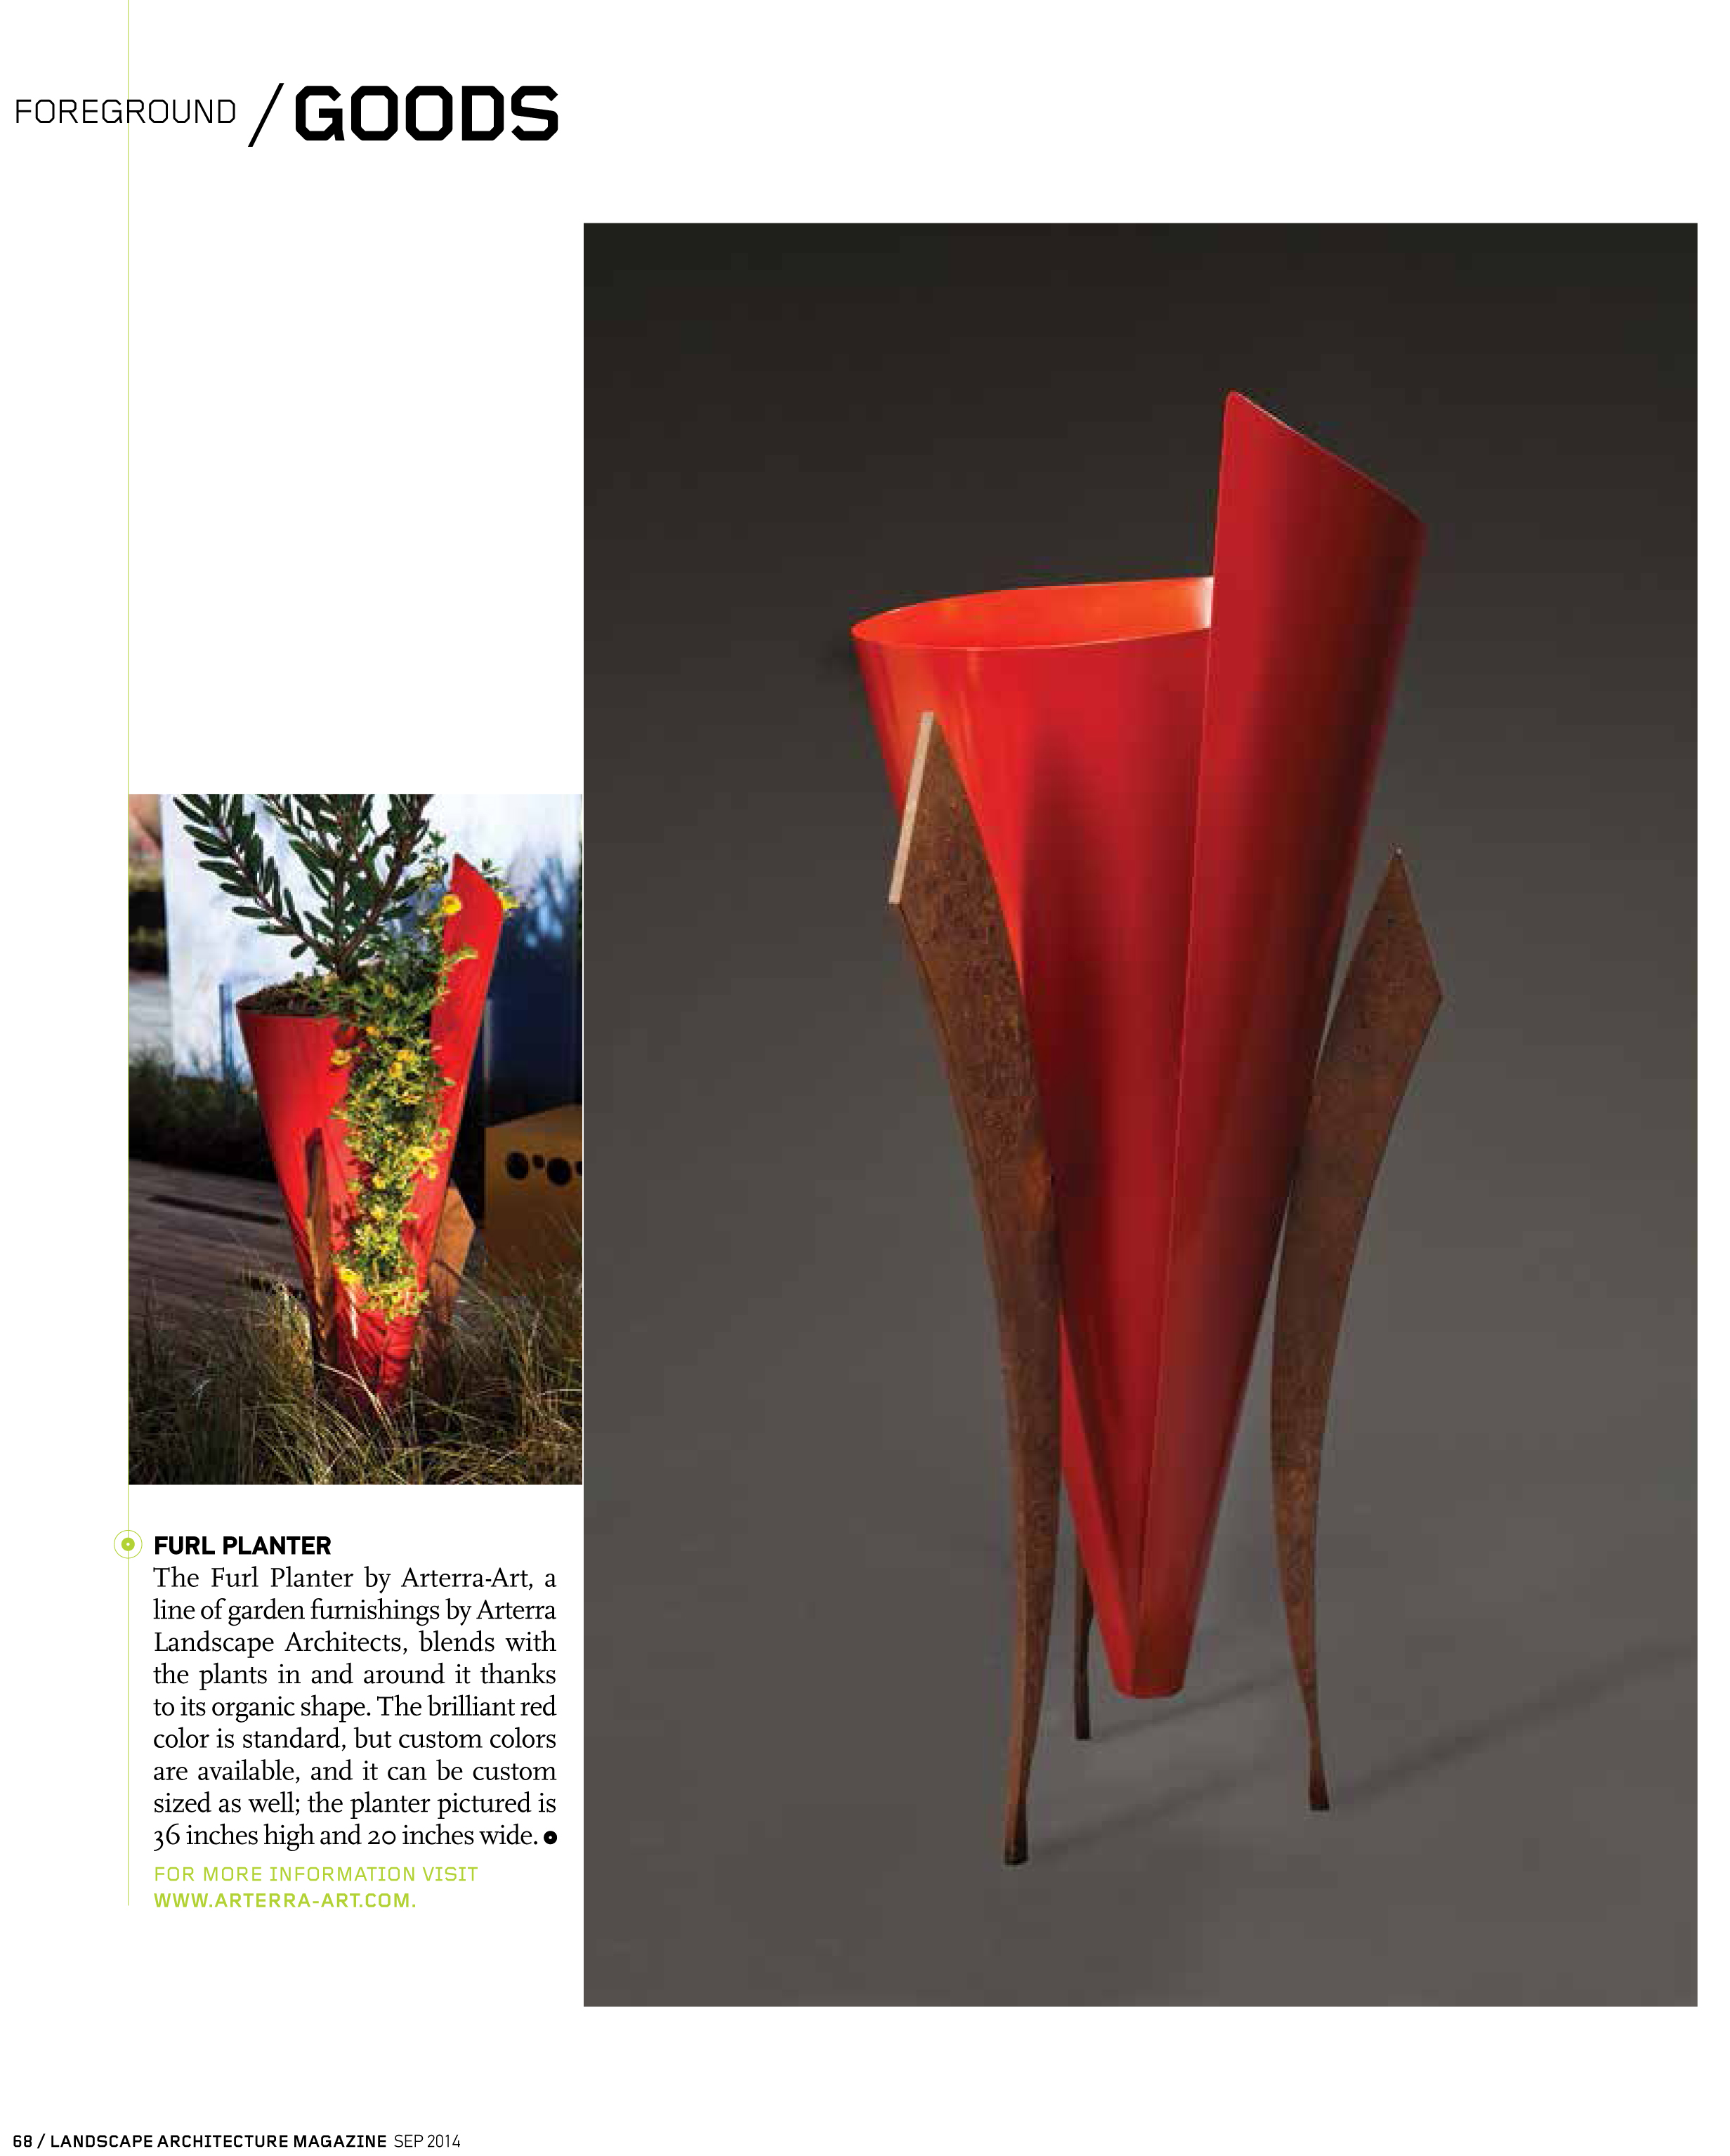 Landscape Architecture Magazine features the Furl, by Arterra-Art, a bright red powder-coated steel and corten sculpture.